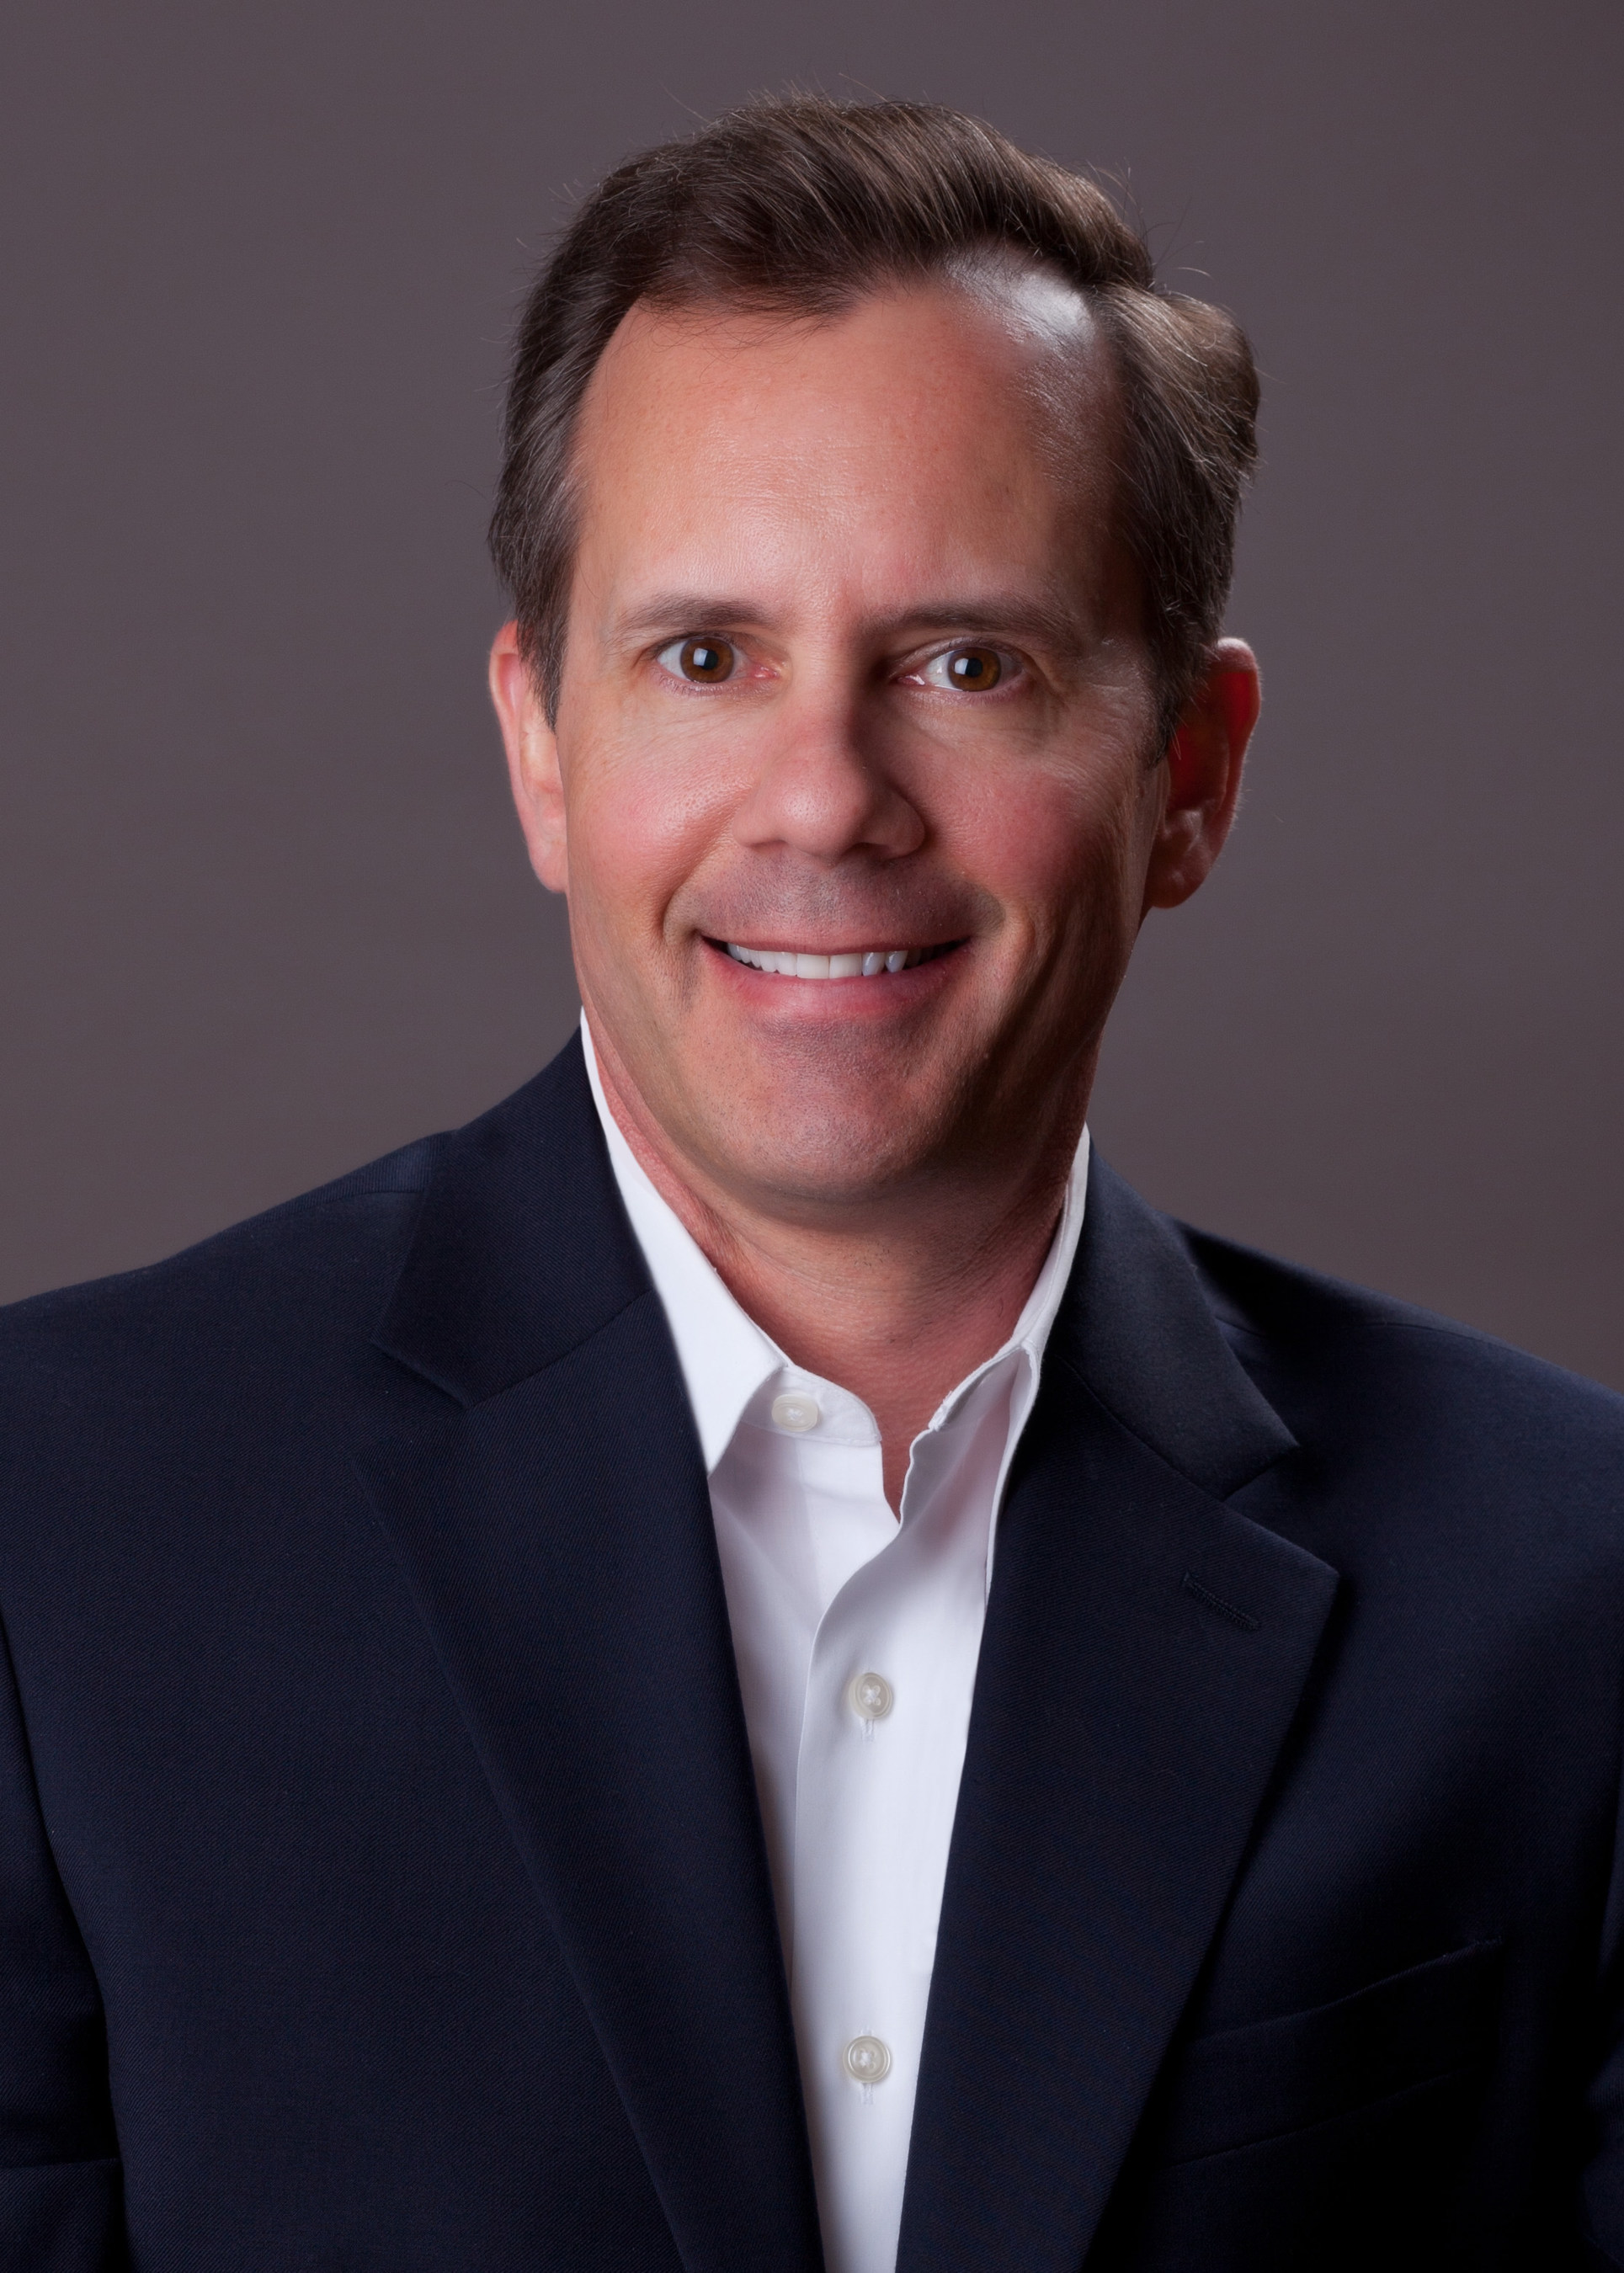 Discount Electronics Announces New Chief Executive Officer (CEO)